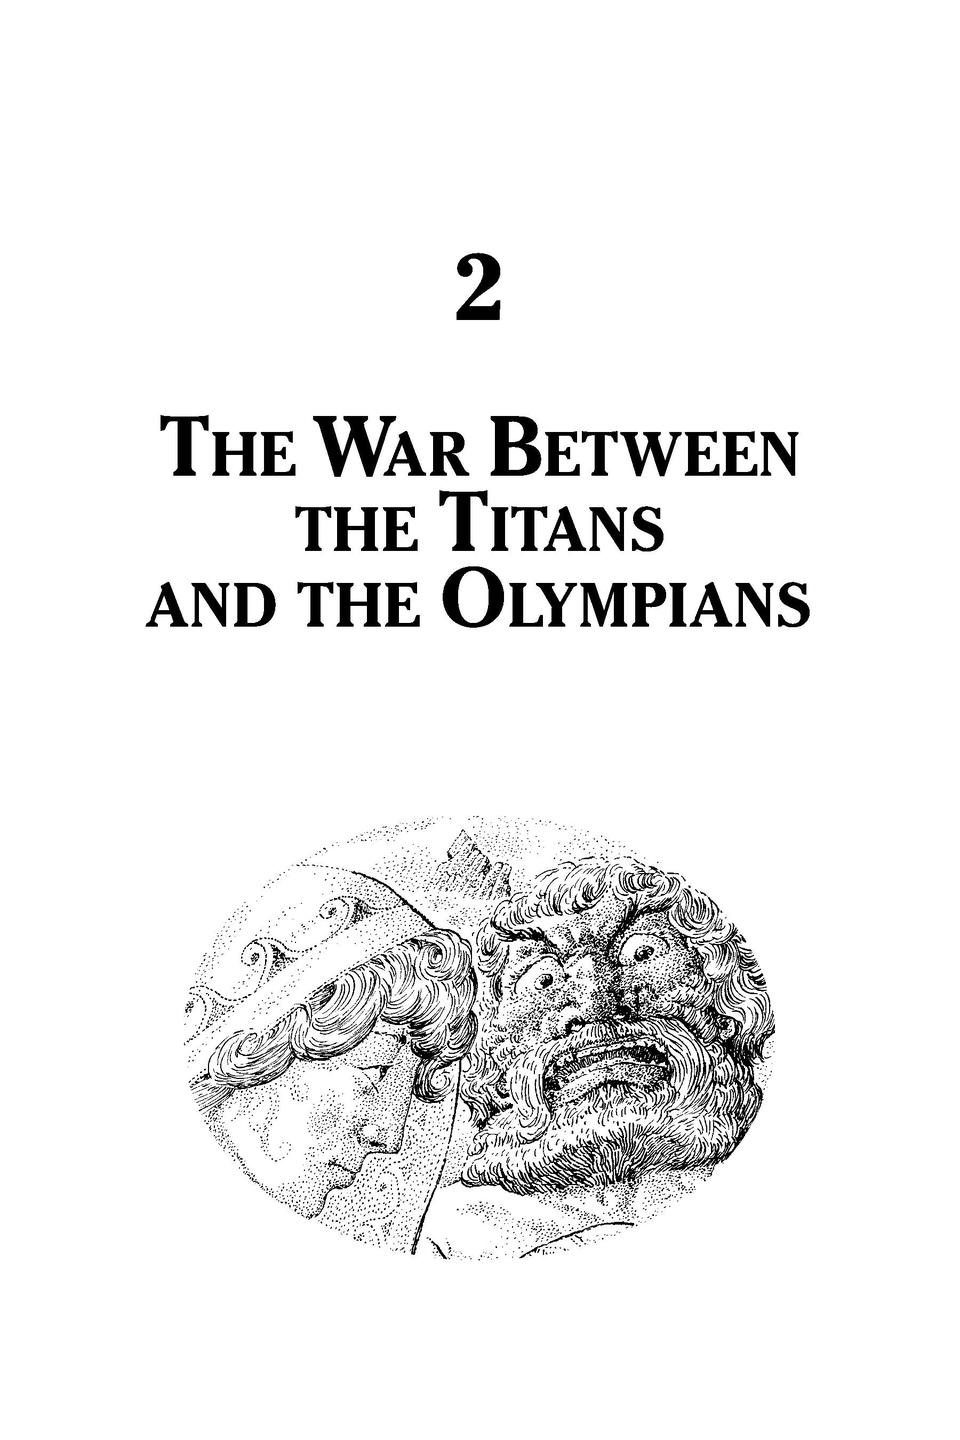 an introduction to the mythology of titans and the olympians What happens when the mighty god zeus and the titan ruler cronus battle to  reign over the world war rages, as seas boil and mountains crumble the sky.